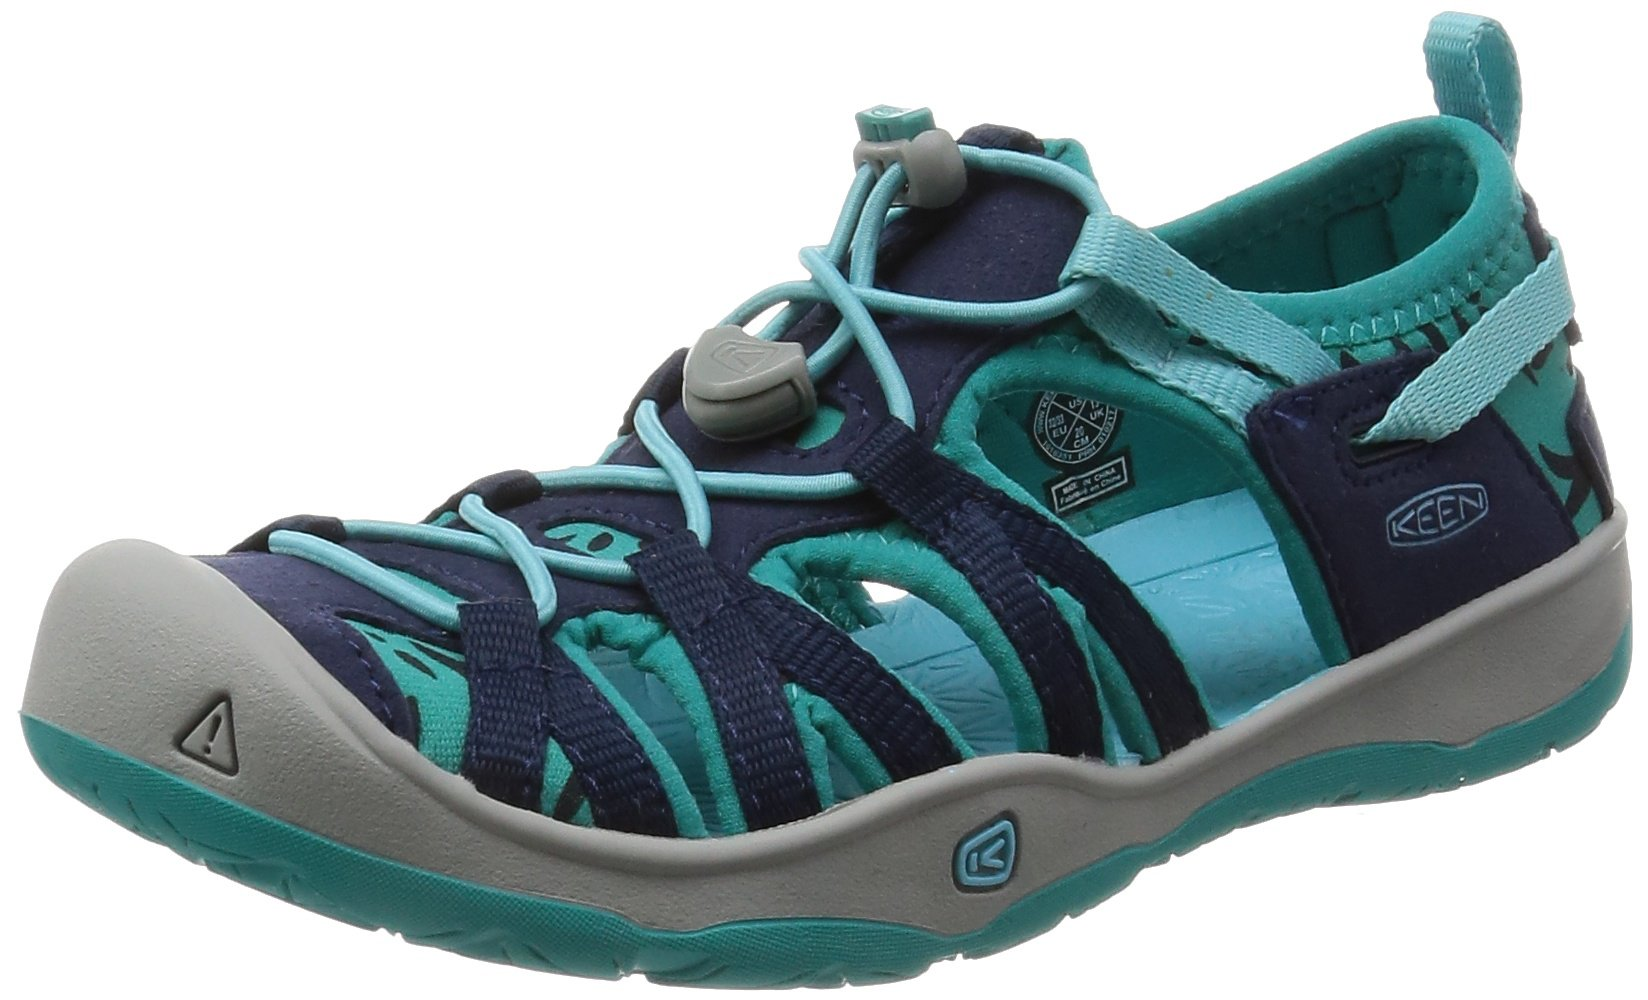 KEEN Baby Moxie Sandal, Dress Blues/Viridian, 10 M US Little Kid by KEEN